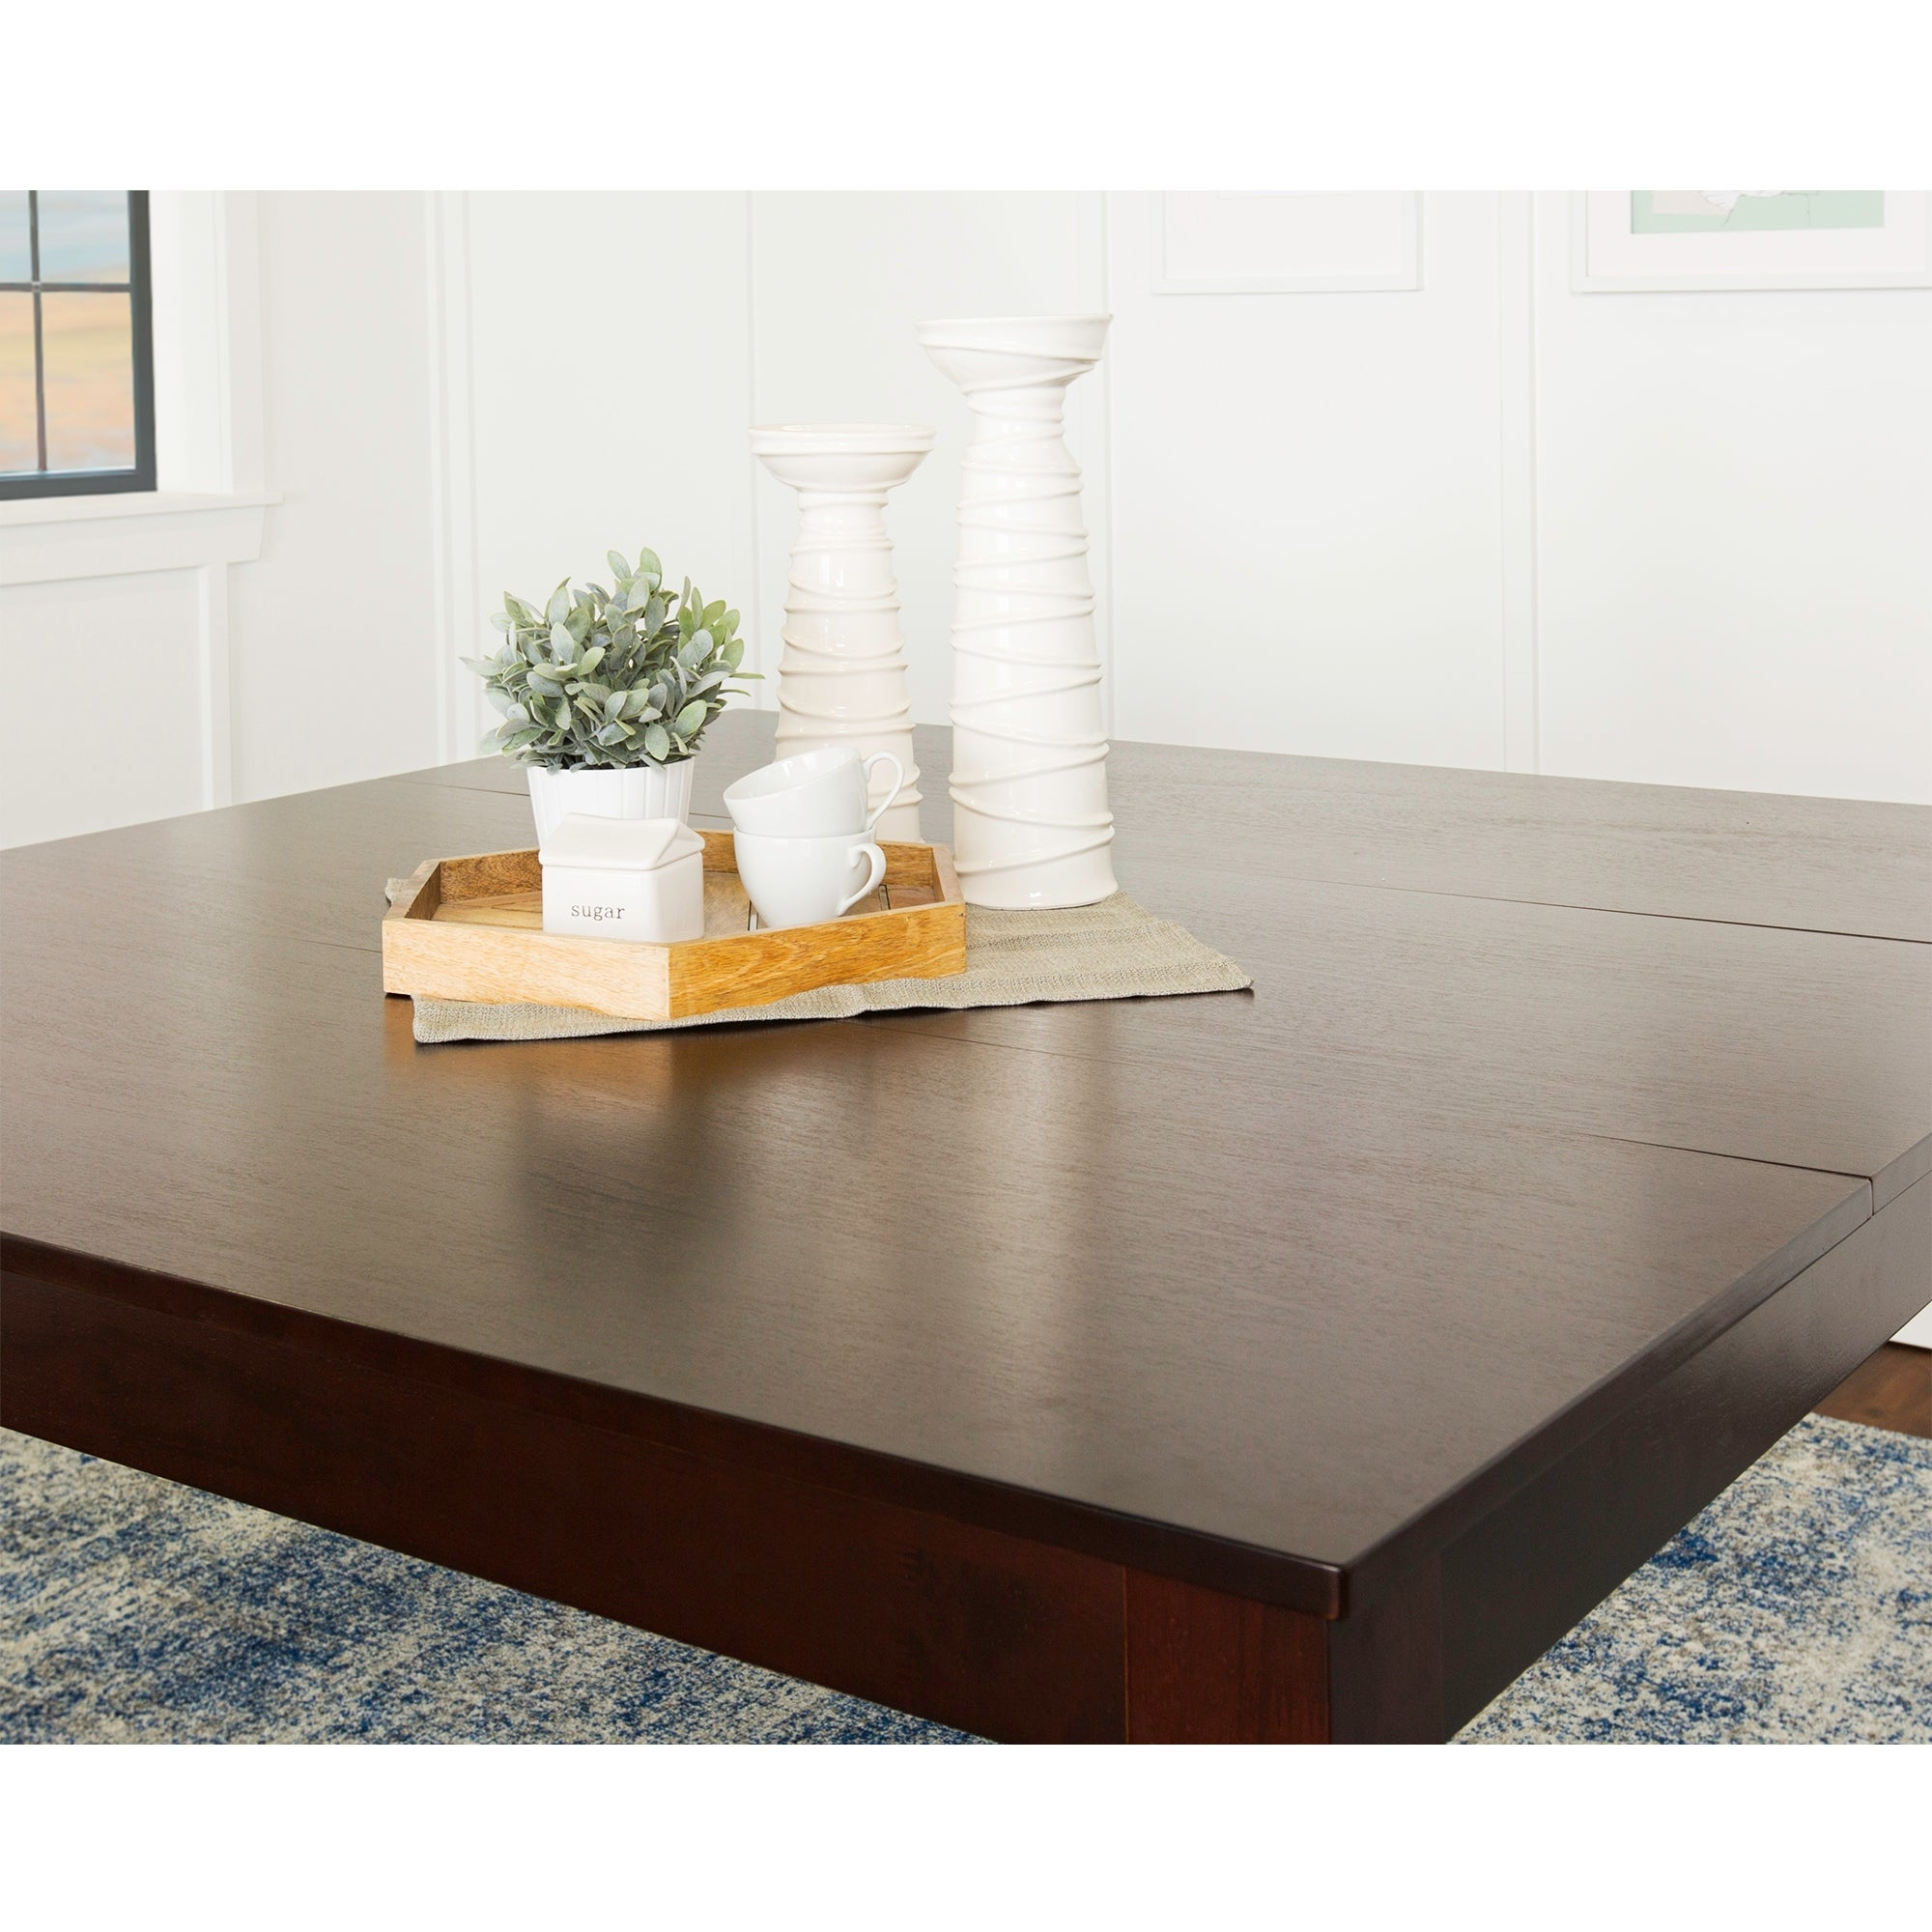 60 x 60 square dining table